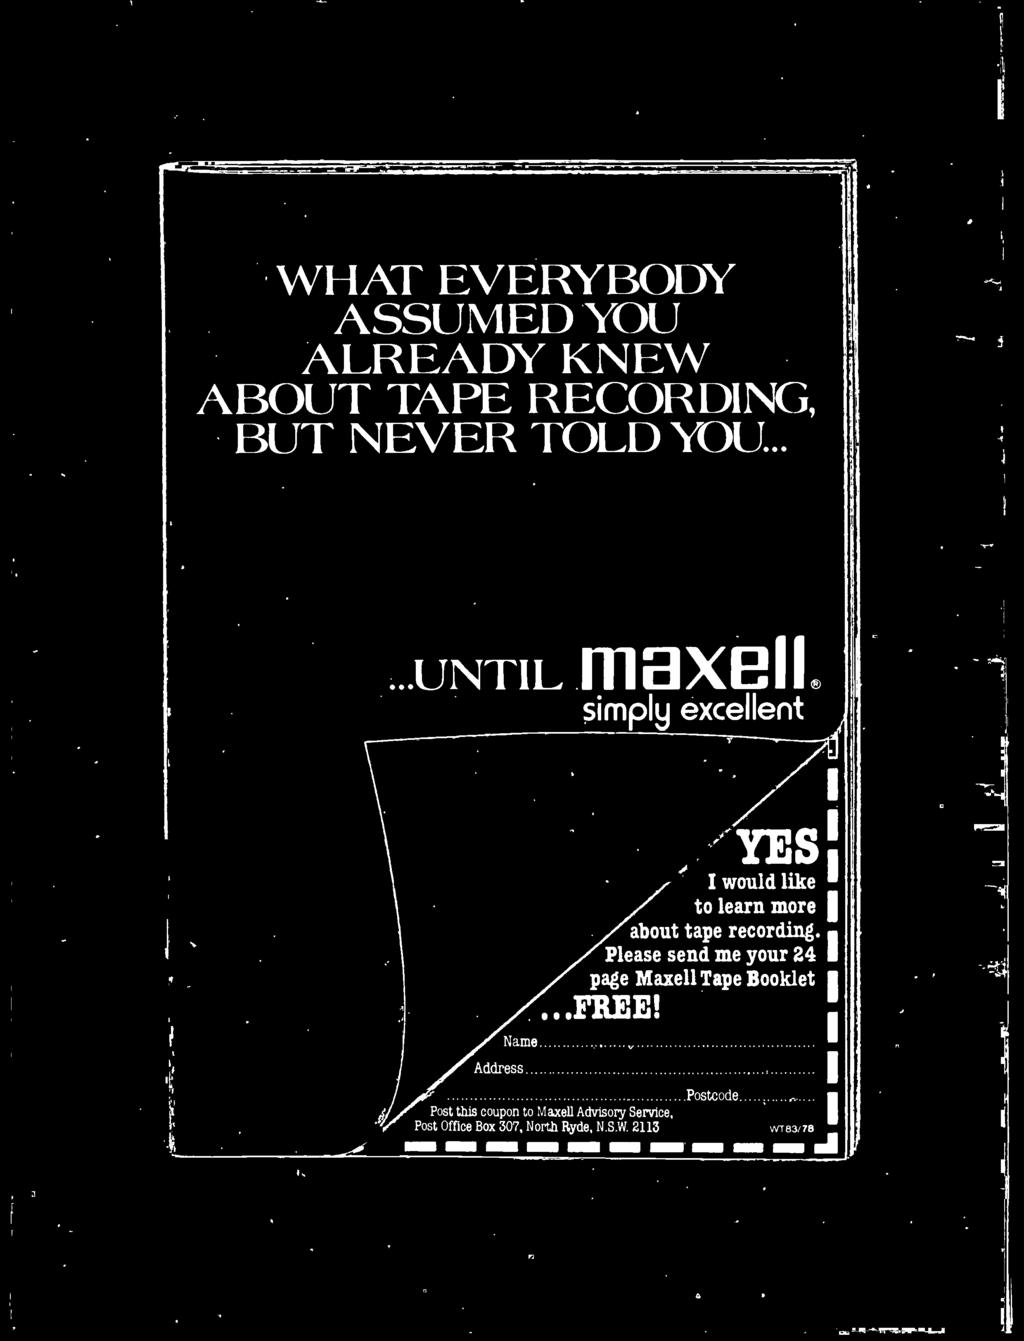 Please send me your 24 page Maxell Tape Booklet '...FREE!